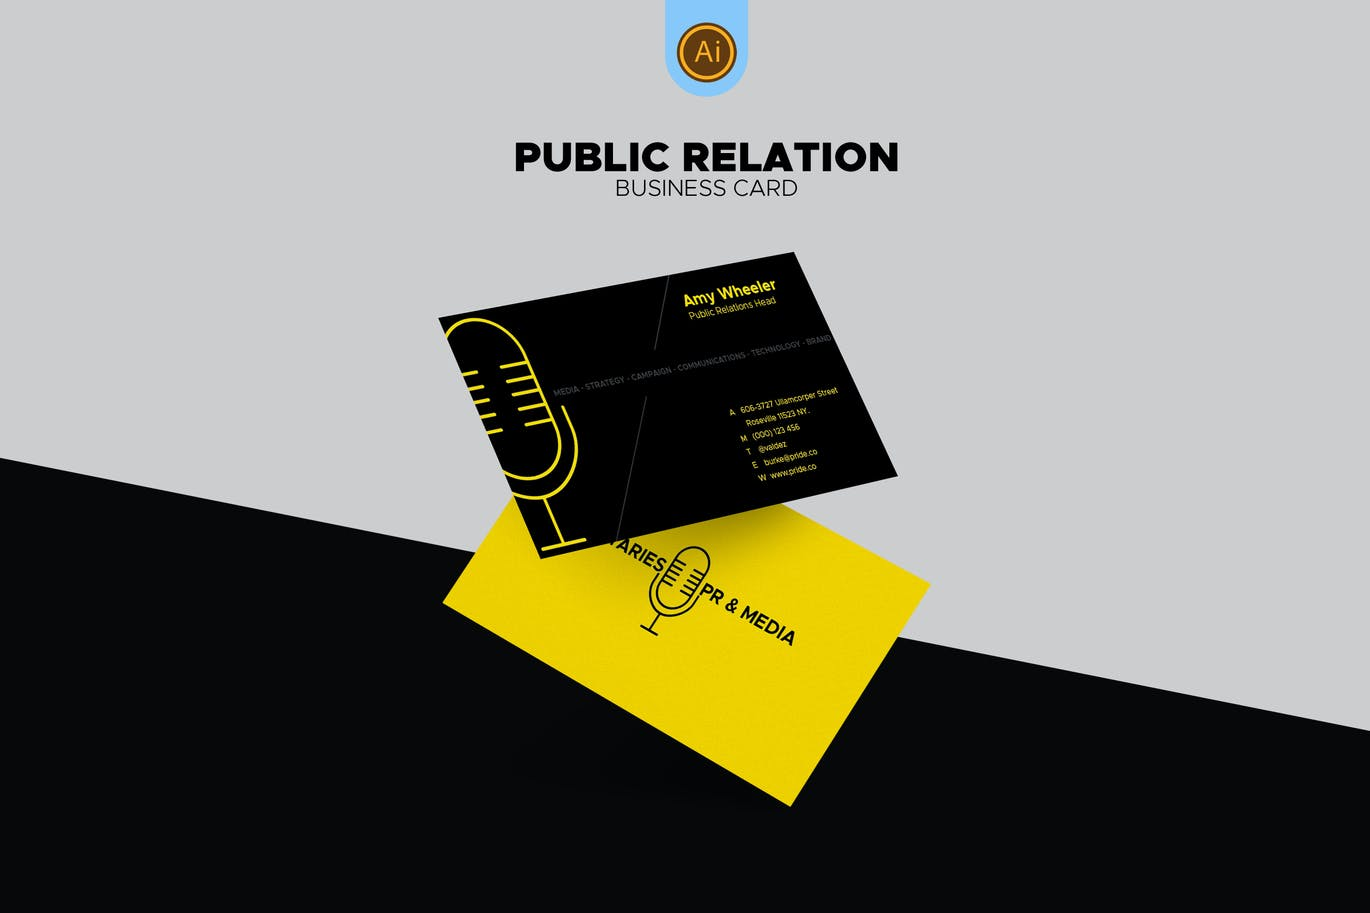 Public Relations Business Card 02 by afahmy on Envato Elements